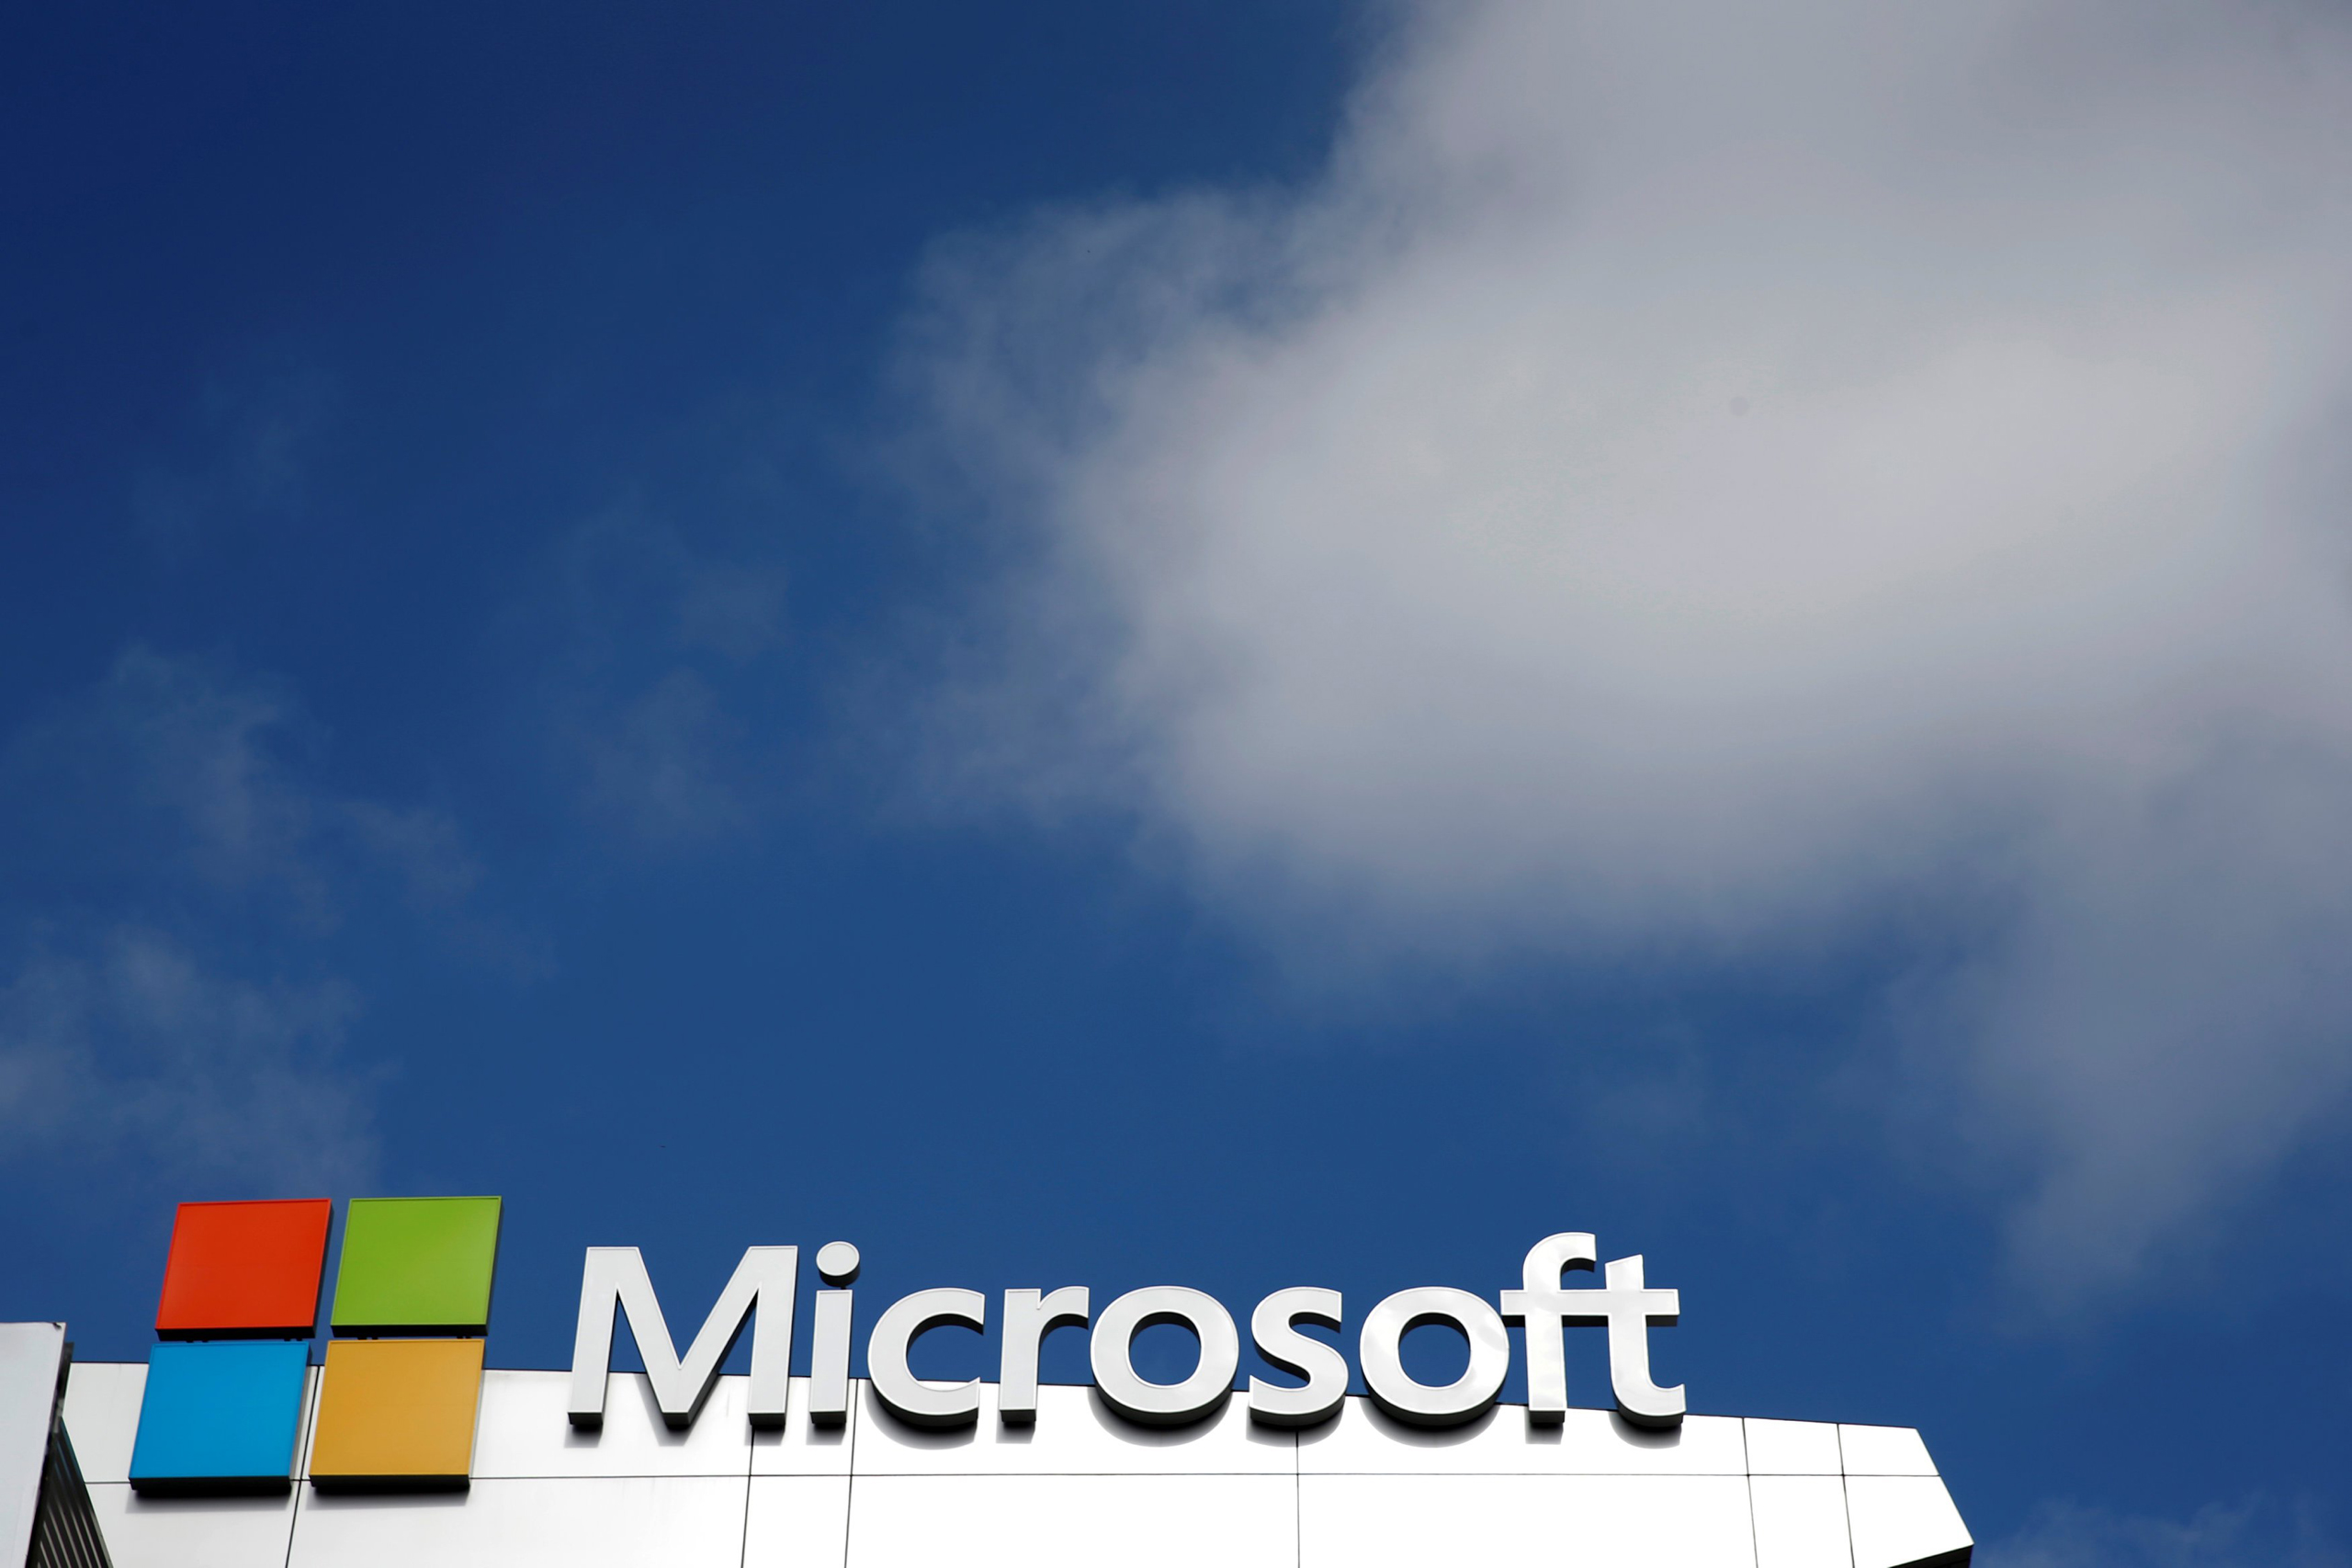 A Microsoft logo is seen next to a cloud the day after Microsoft Corp's $26.2 billion purchase of LinkedIn Corp, in Los Angeles on June 14, 2016.